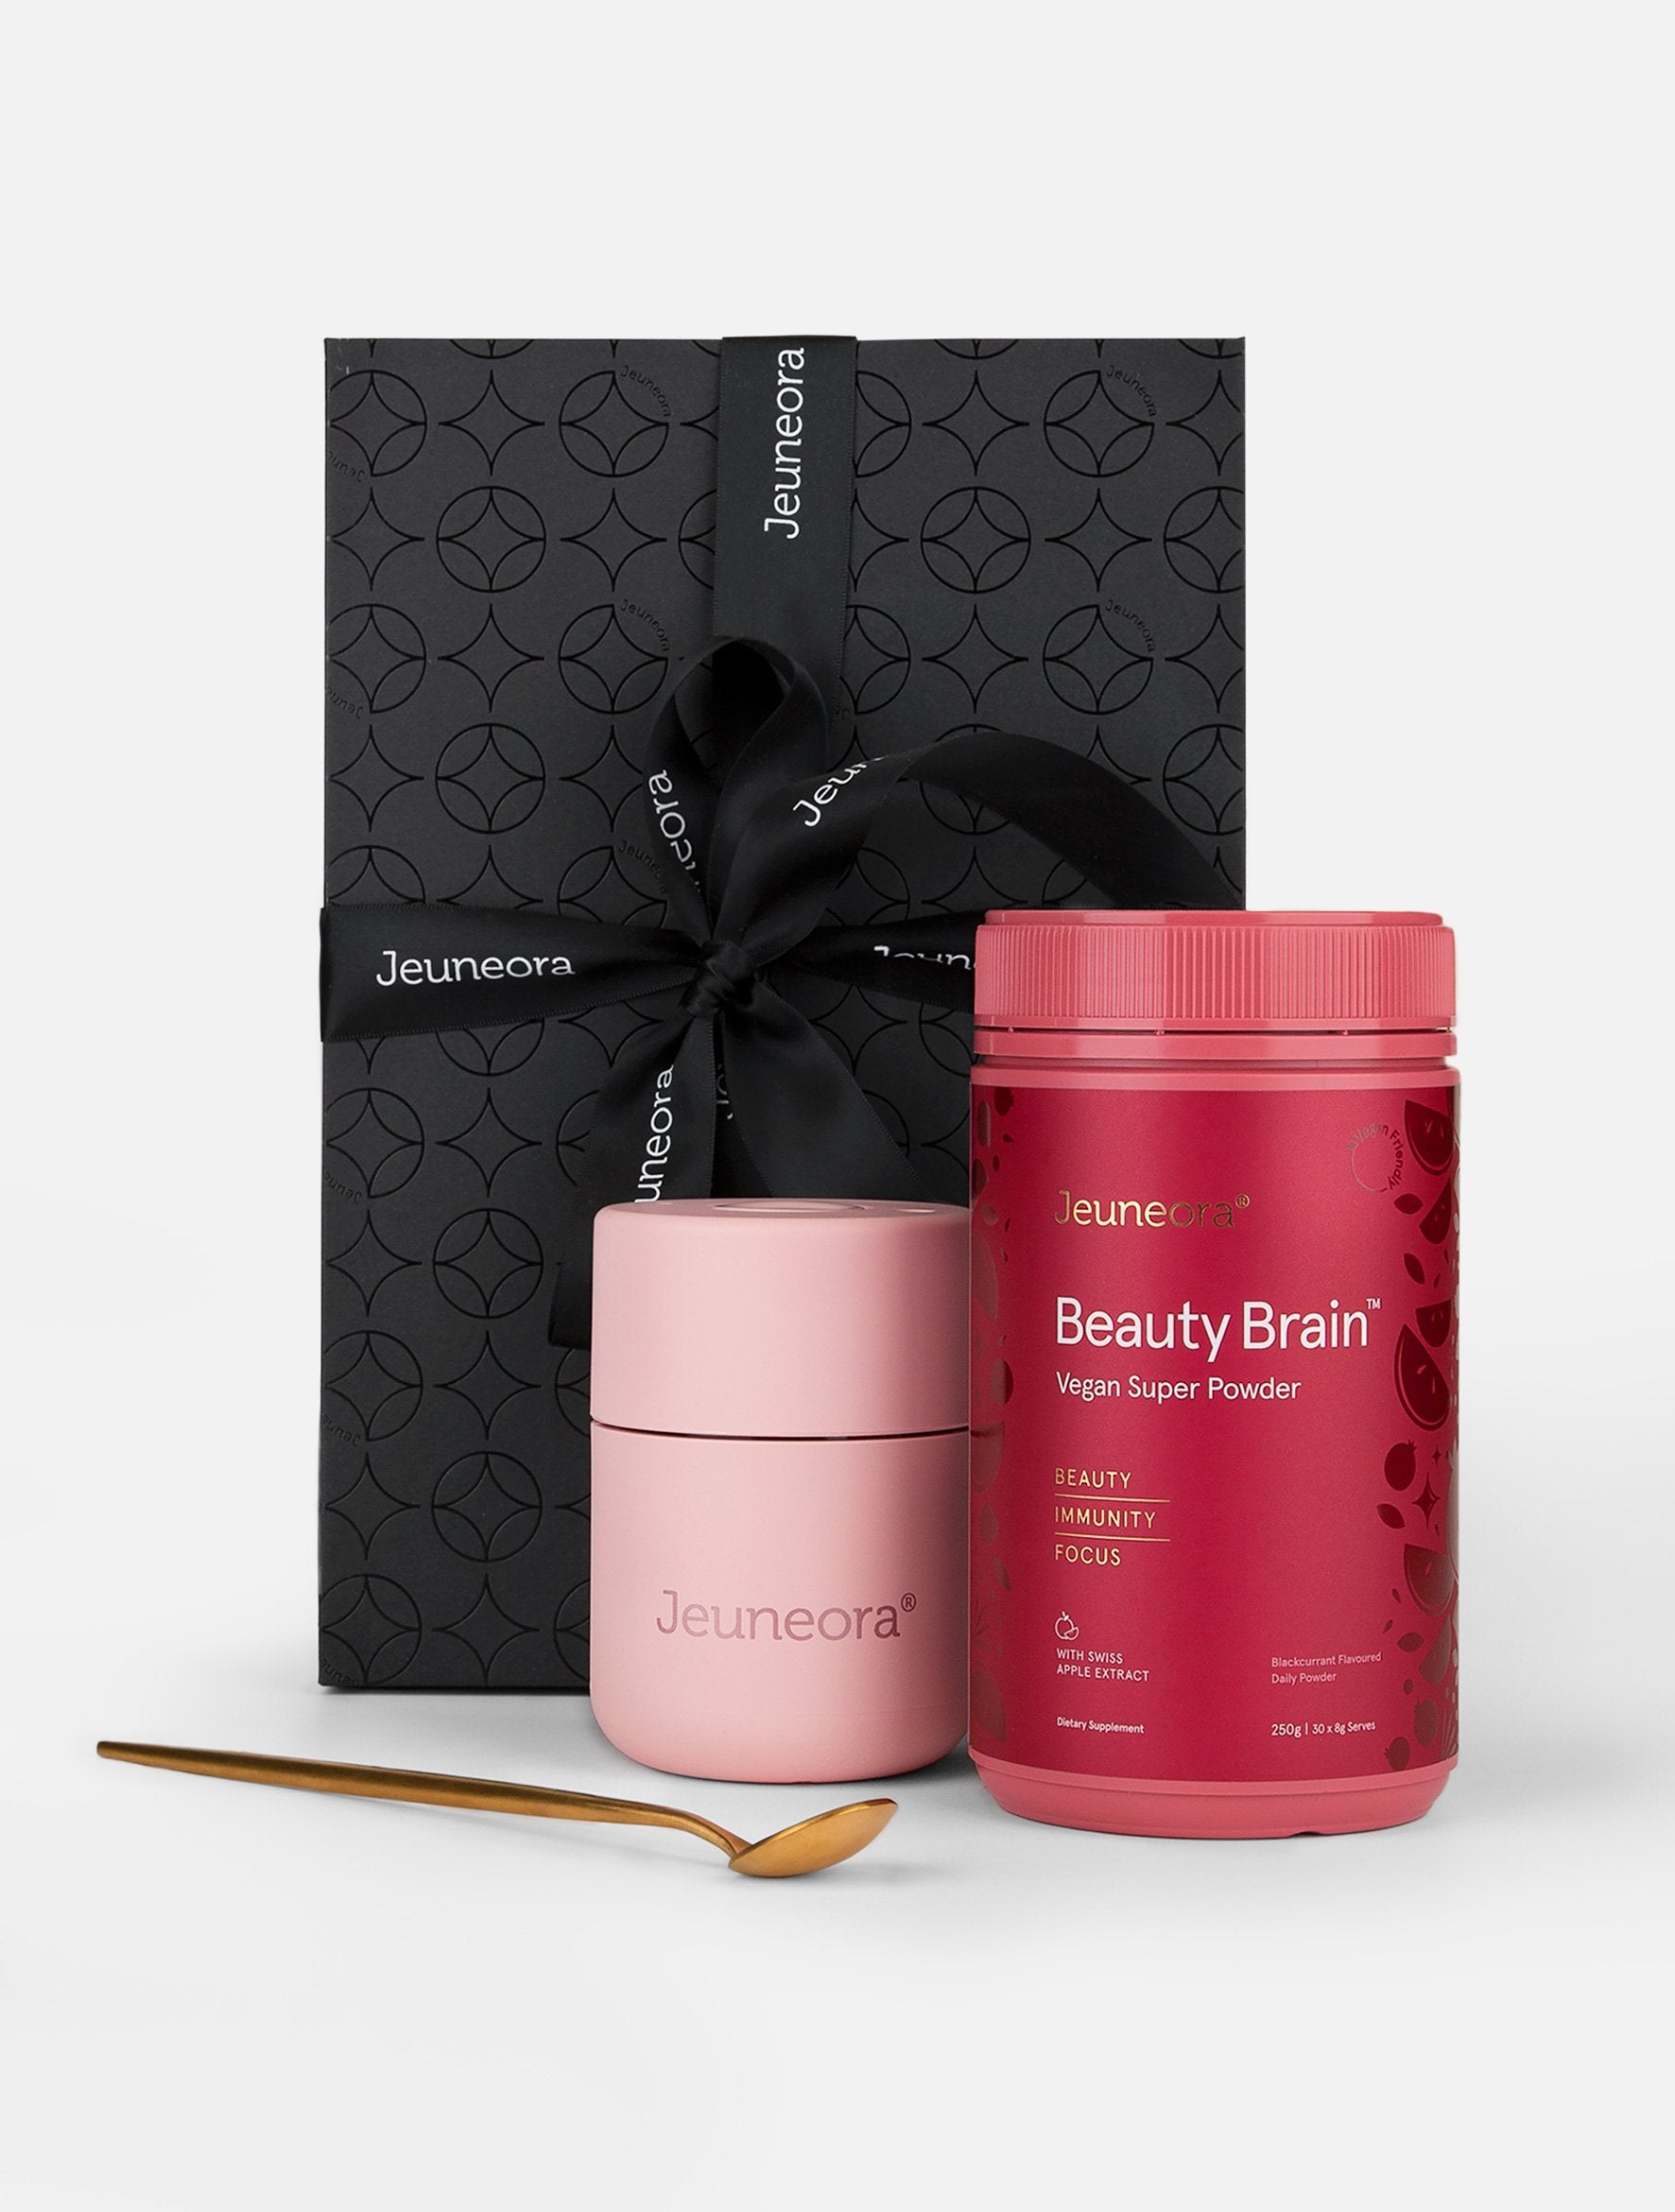 Jeuneora Daily Zen Gift Box with Beauty Brain